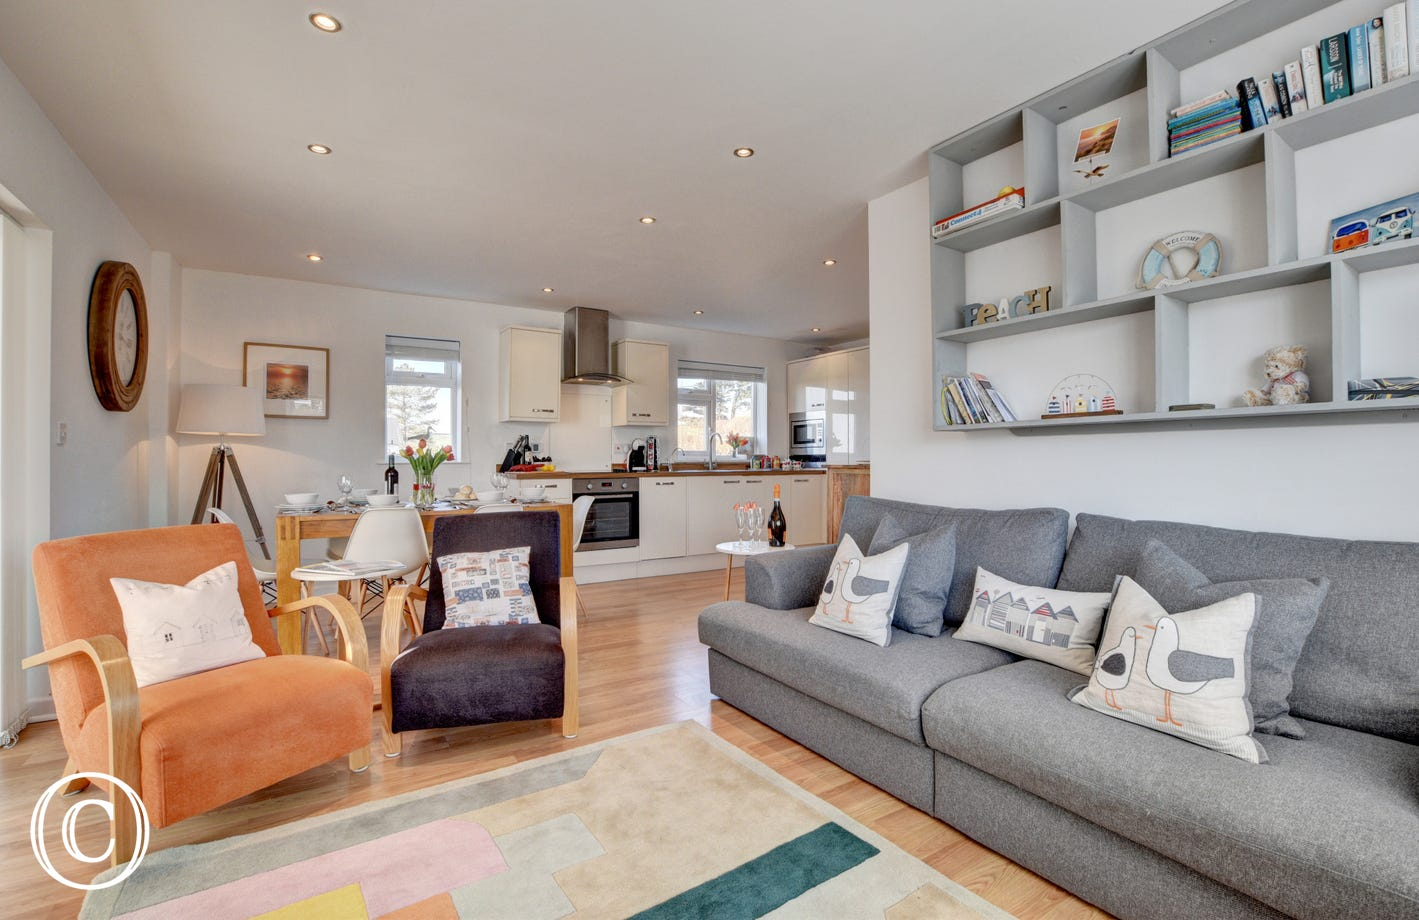 The main living area has a modern feel with comfy seating and the patio doors providing access to the garden